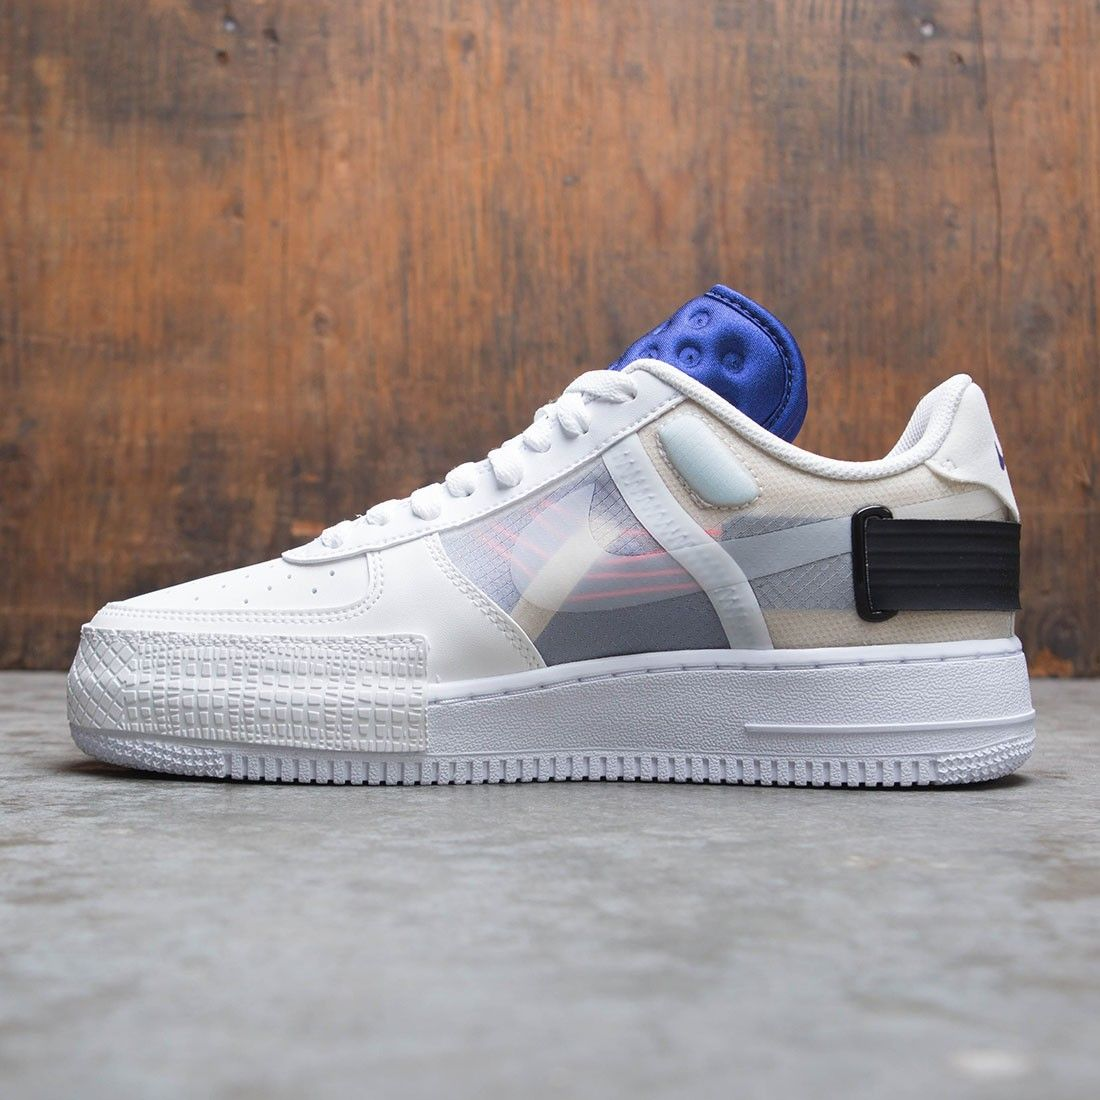 The Sneaker Chop Nike Air Force 1